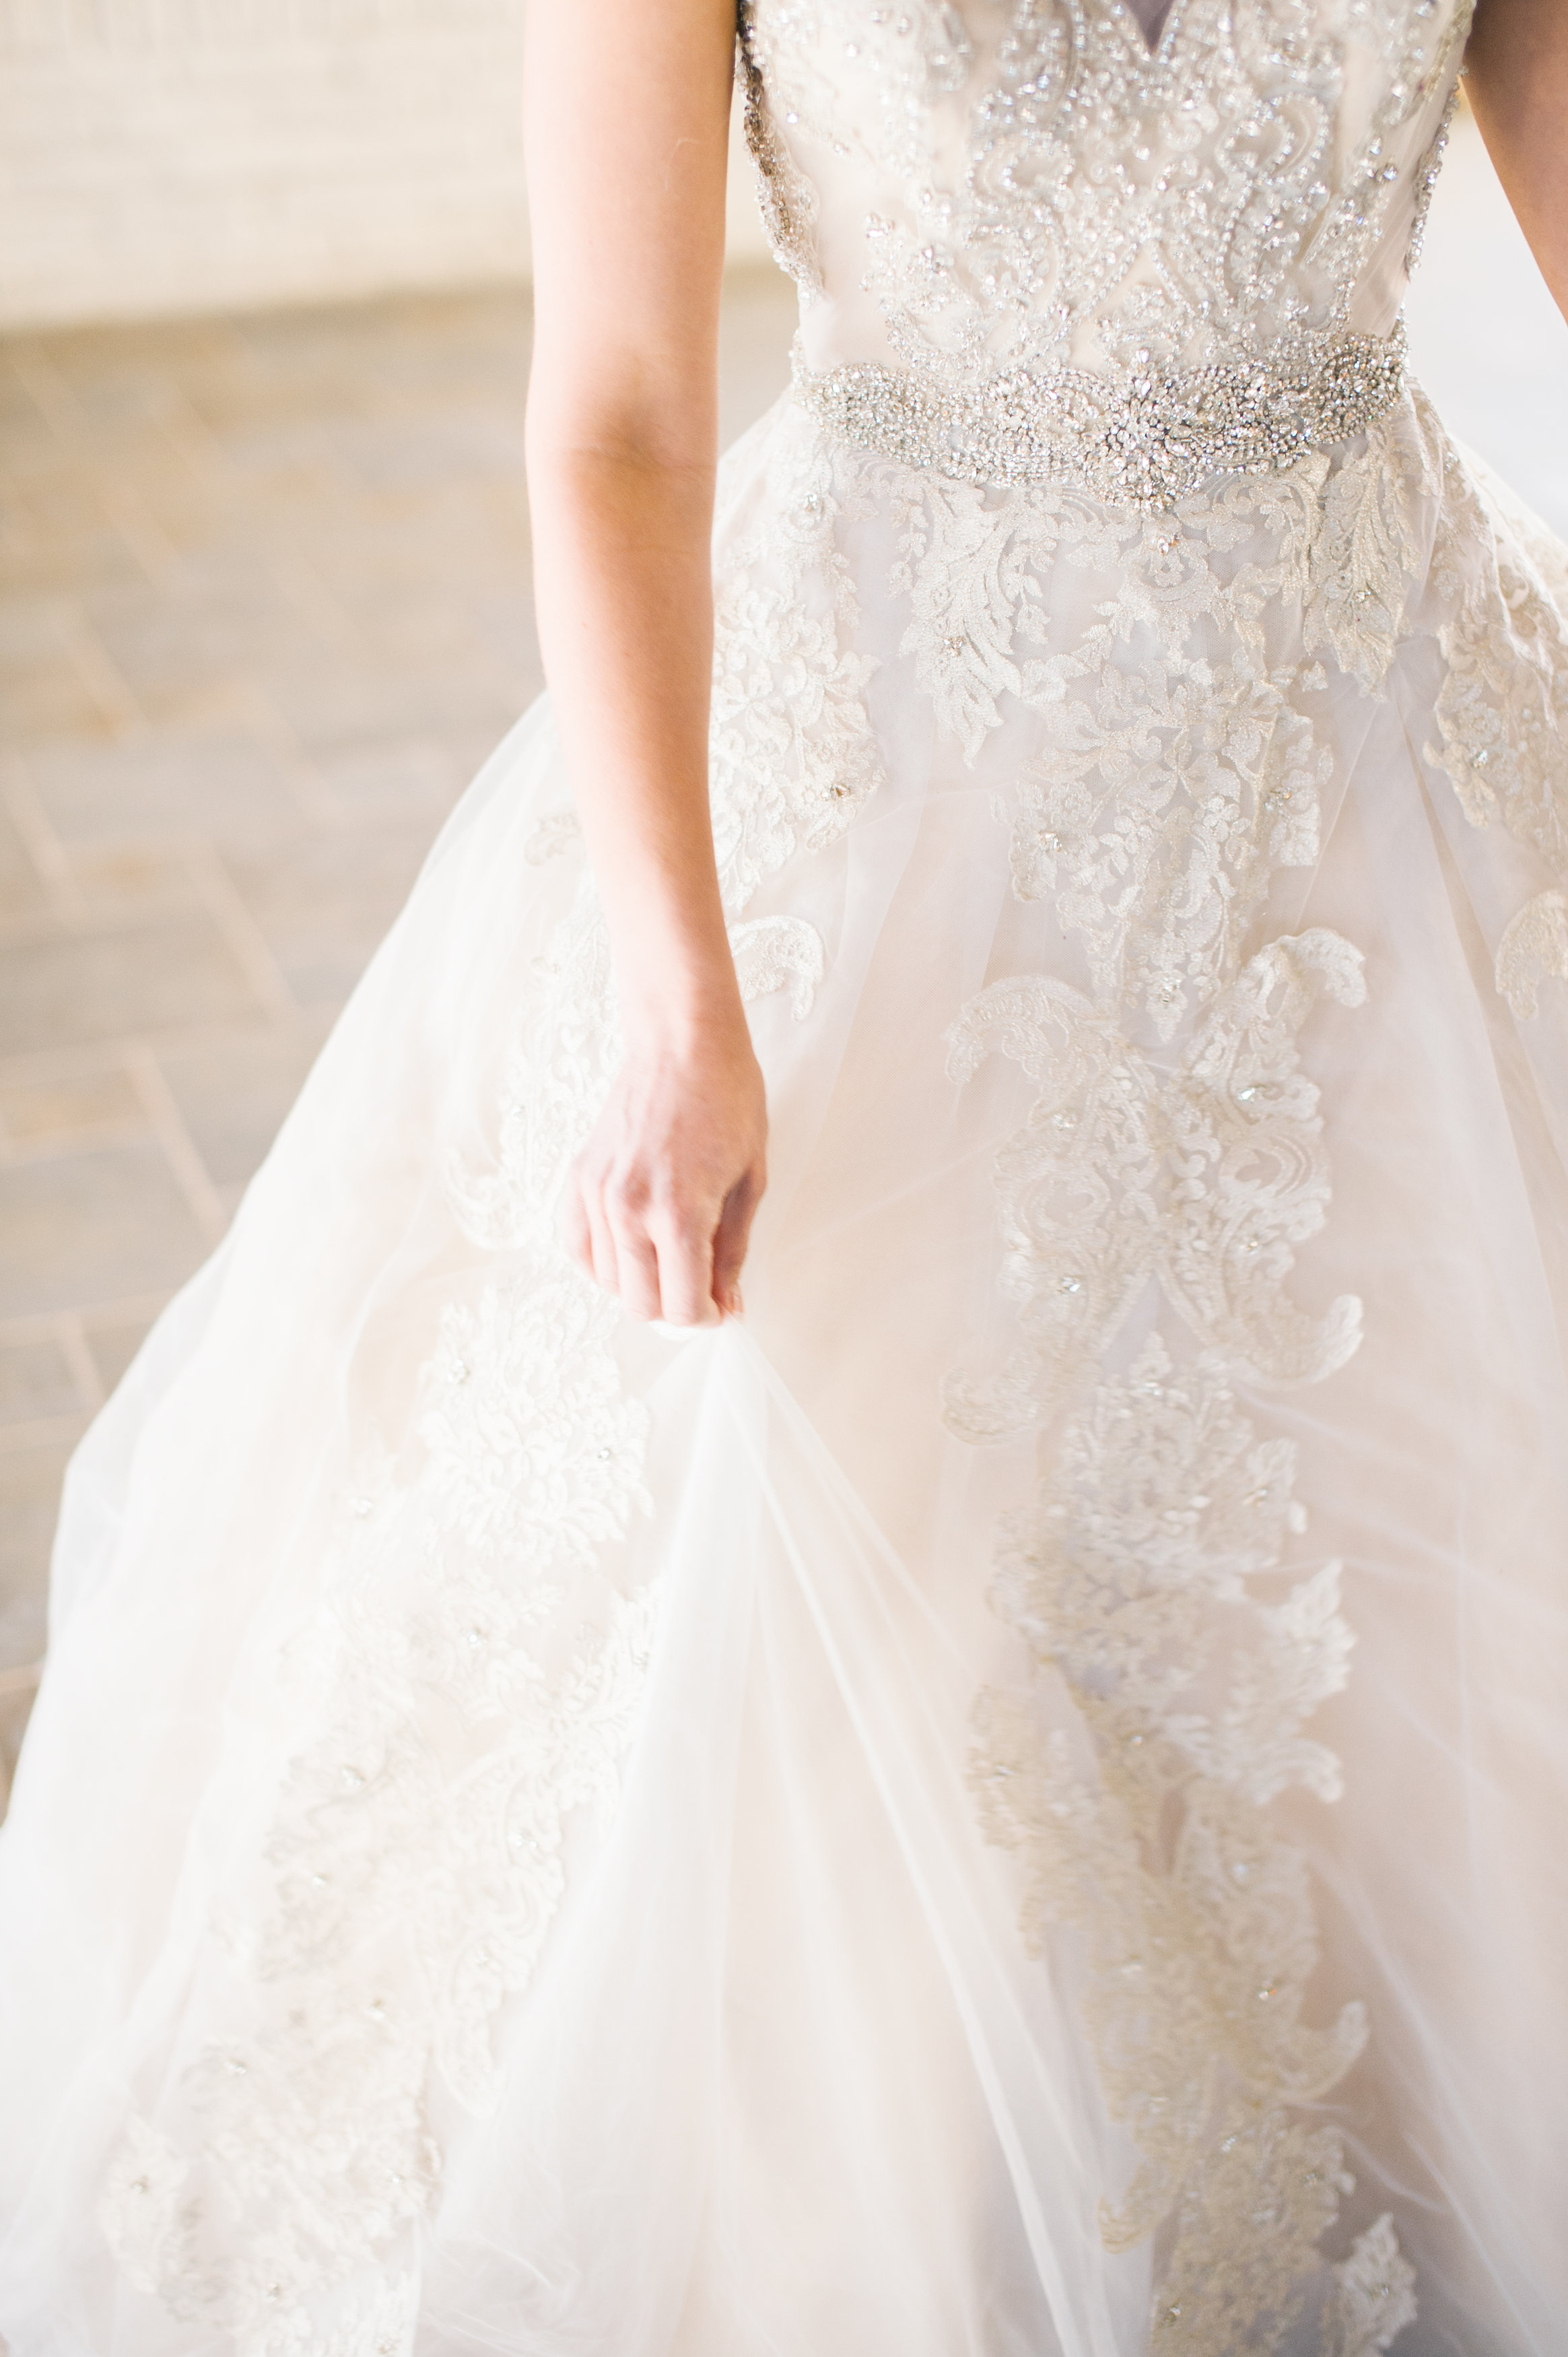 weddinginspirationtheweddingdress